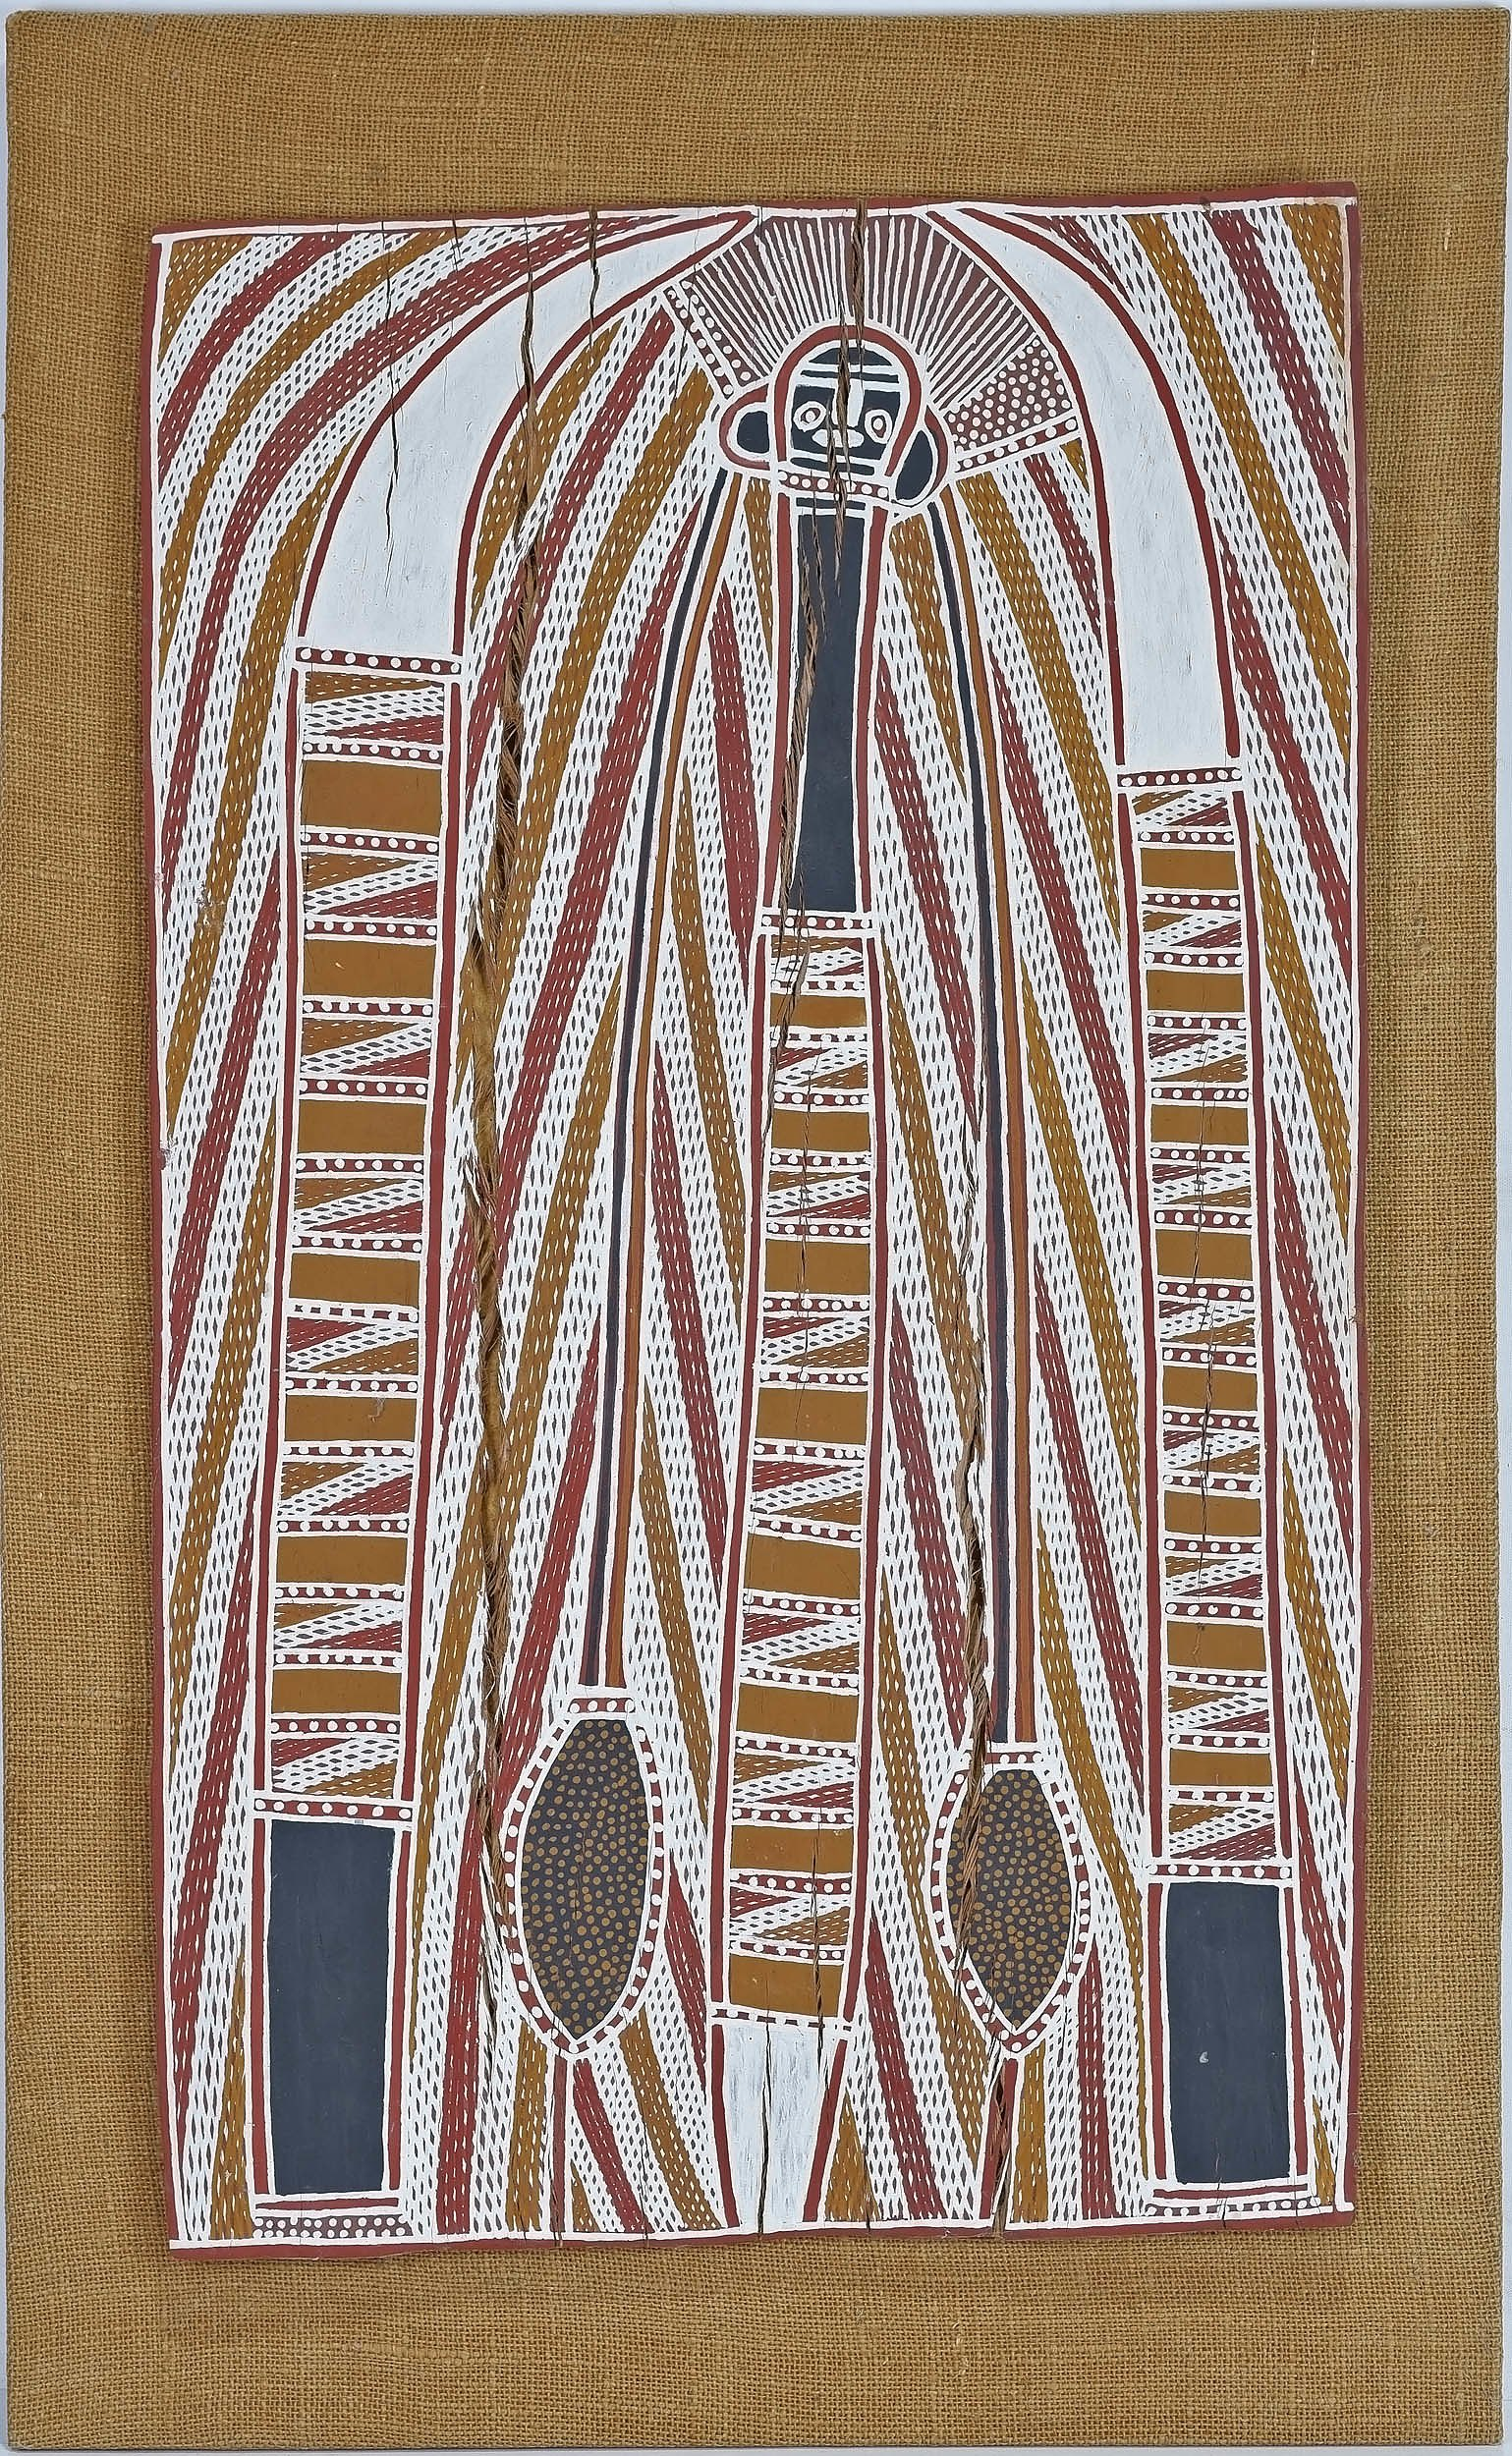 'Paddy Dhatangu (Galwanuk-Liyagalawumirr 1915-93) Father Totem, Natural Earth Pigments on Eucalyptus Bark'